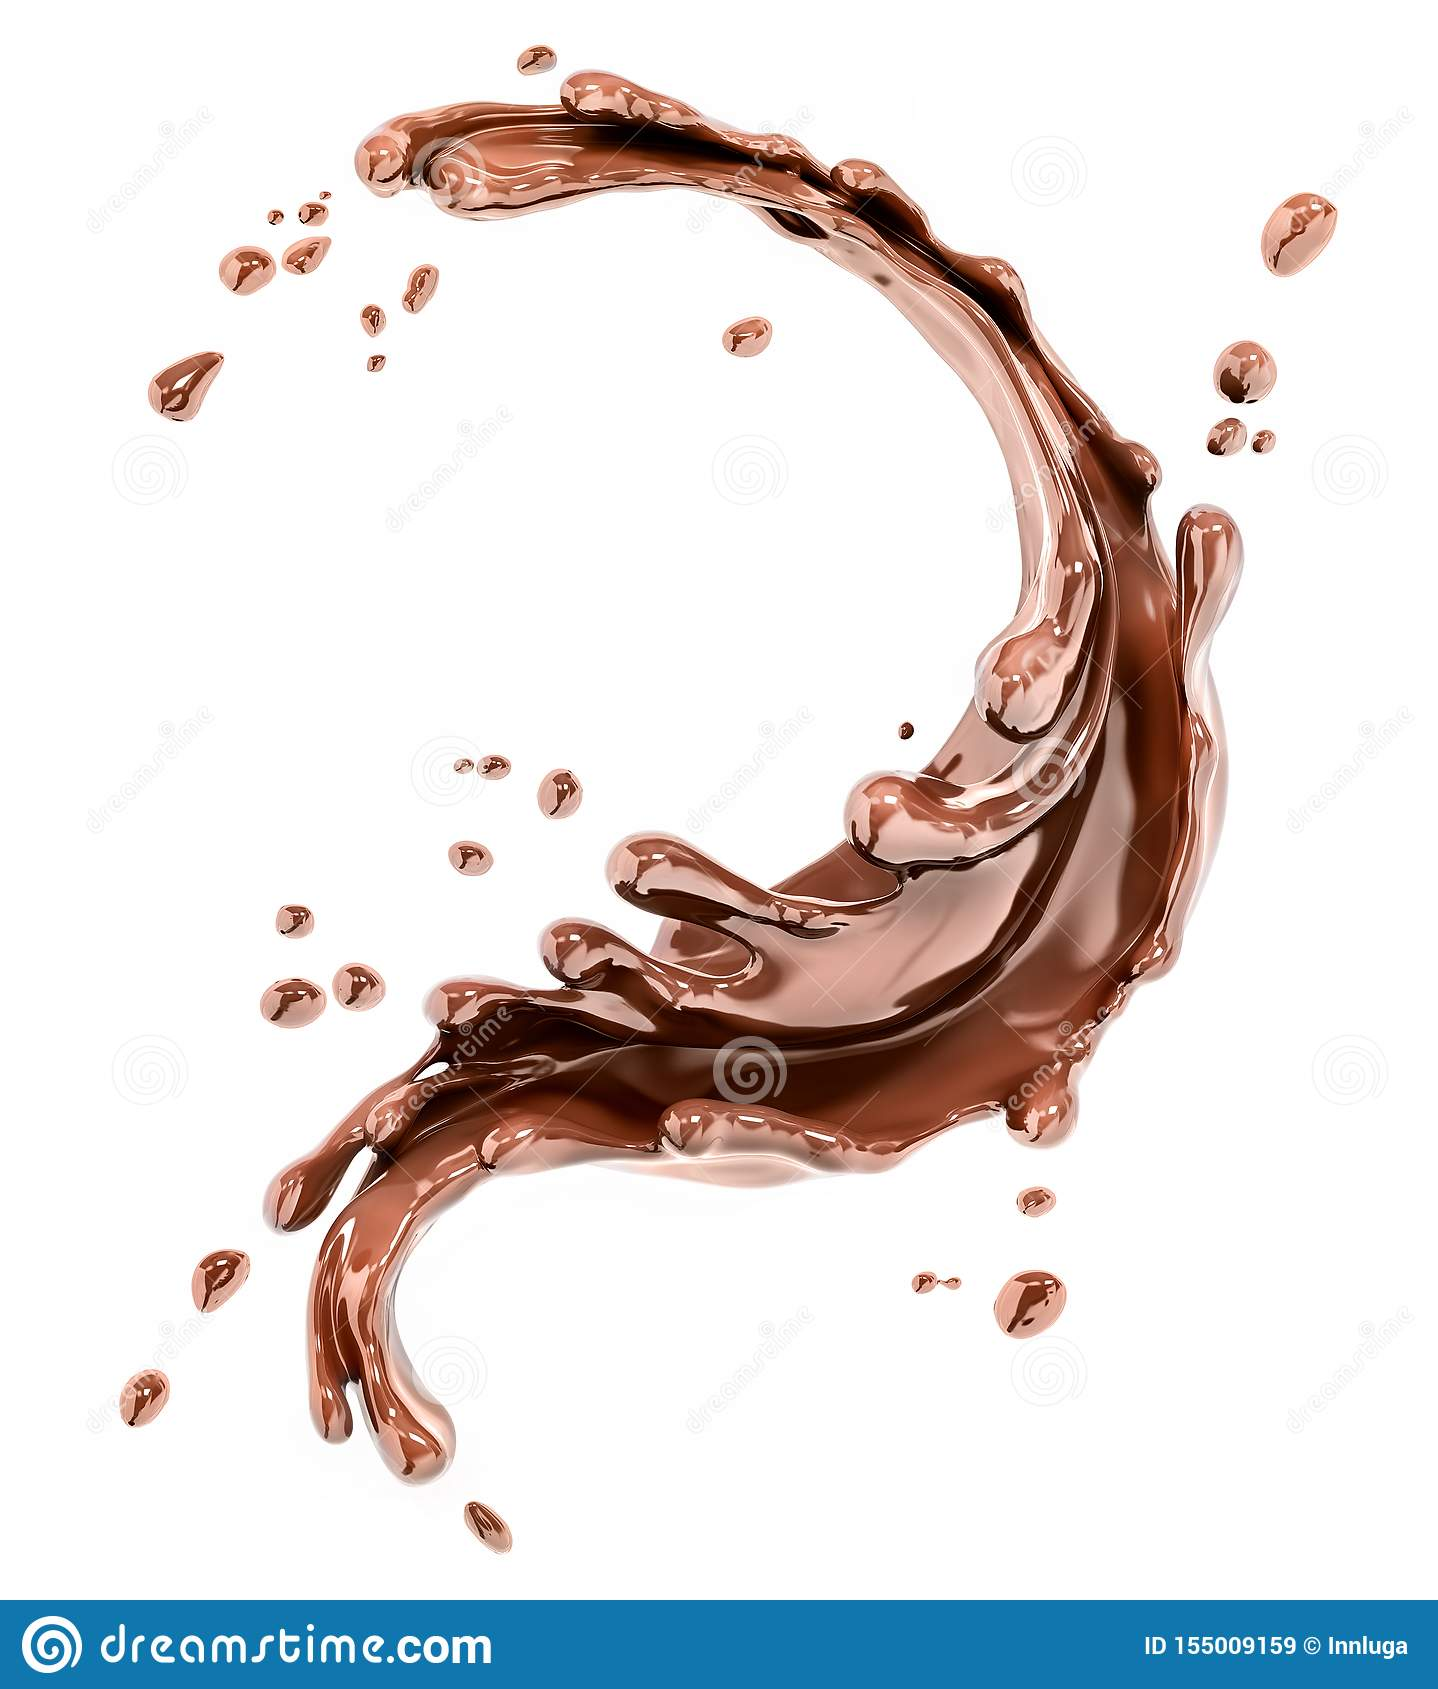 Splashing chocolate abstract background, 3d rendering